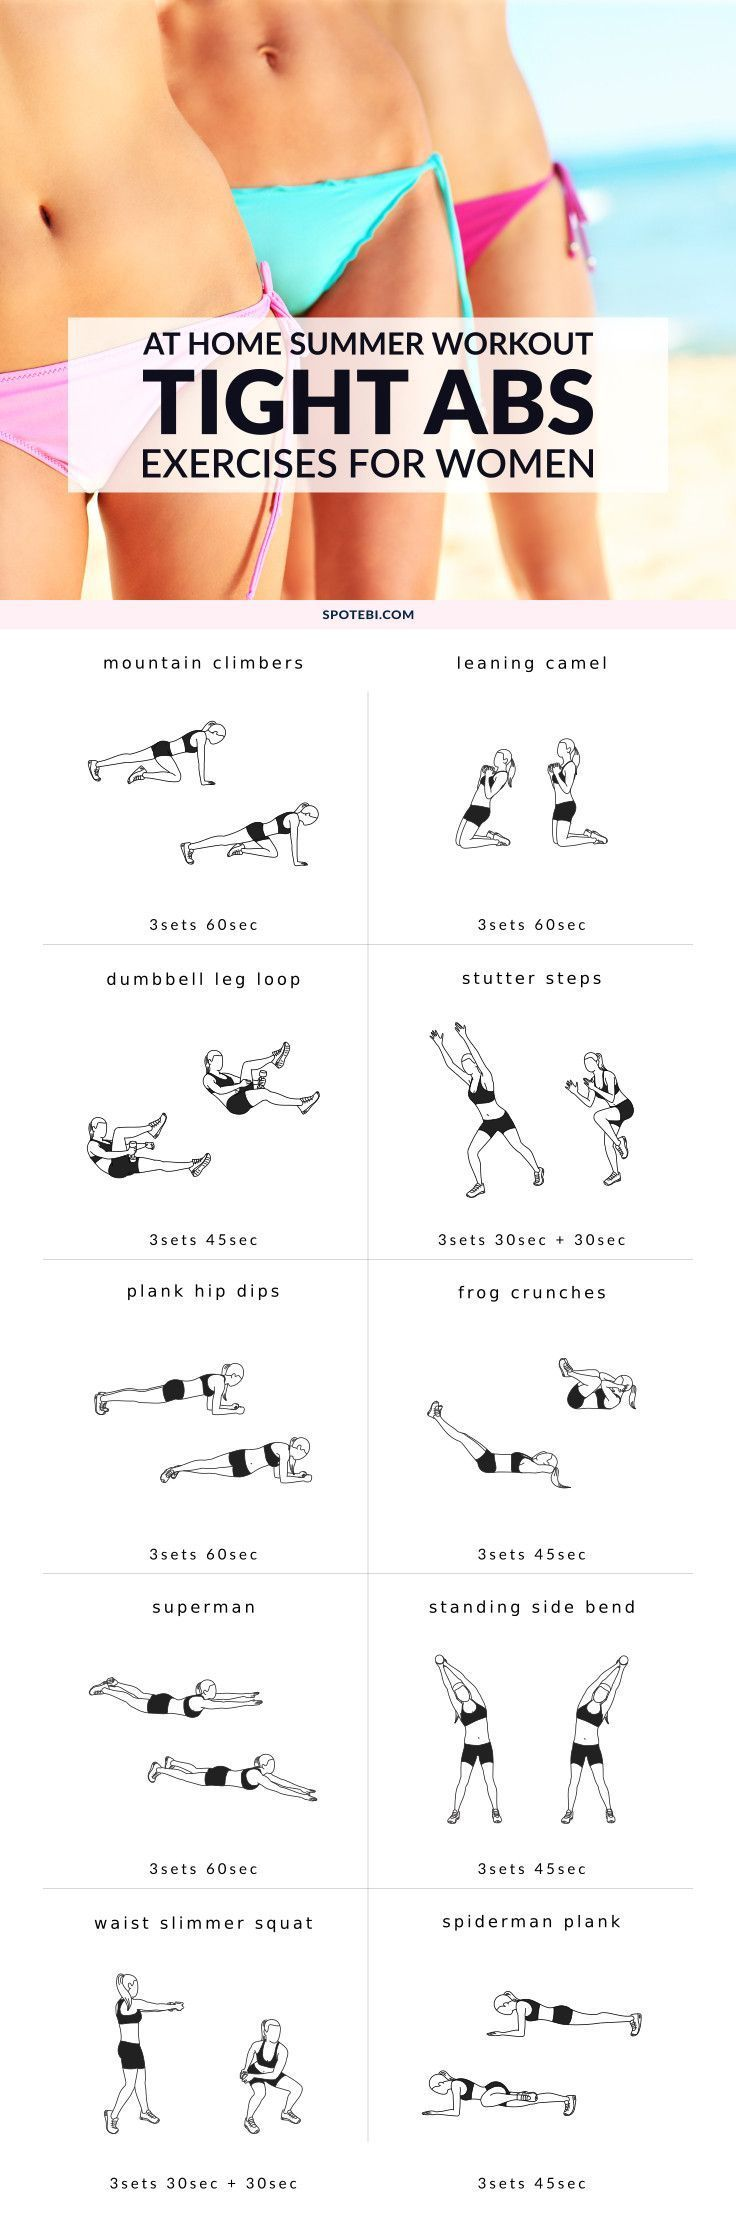 Get a flat, toned stomach and snap into shape with this bikini body tight tummy workout. 10 core-strengthening moves to help you sculpt sexy curves and say goodbye to shapewear for good. Slim, strong tummy here we come! www.spotebi.com/...